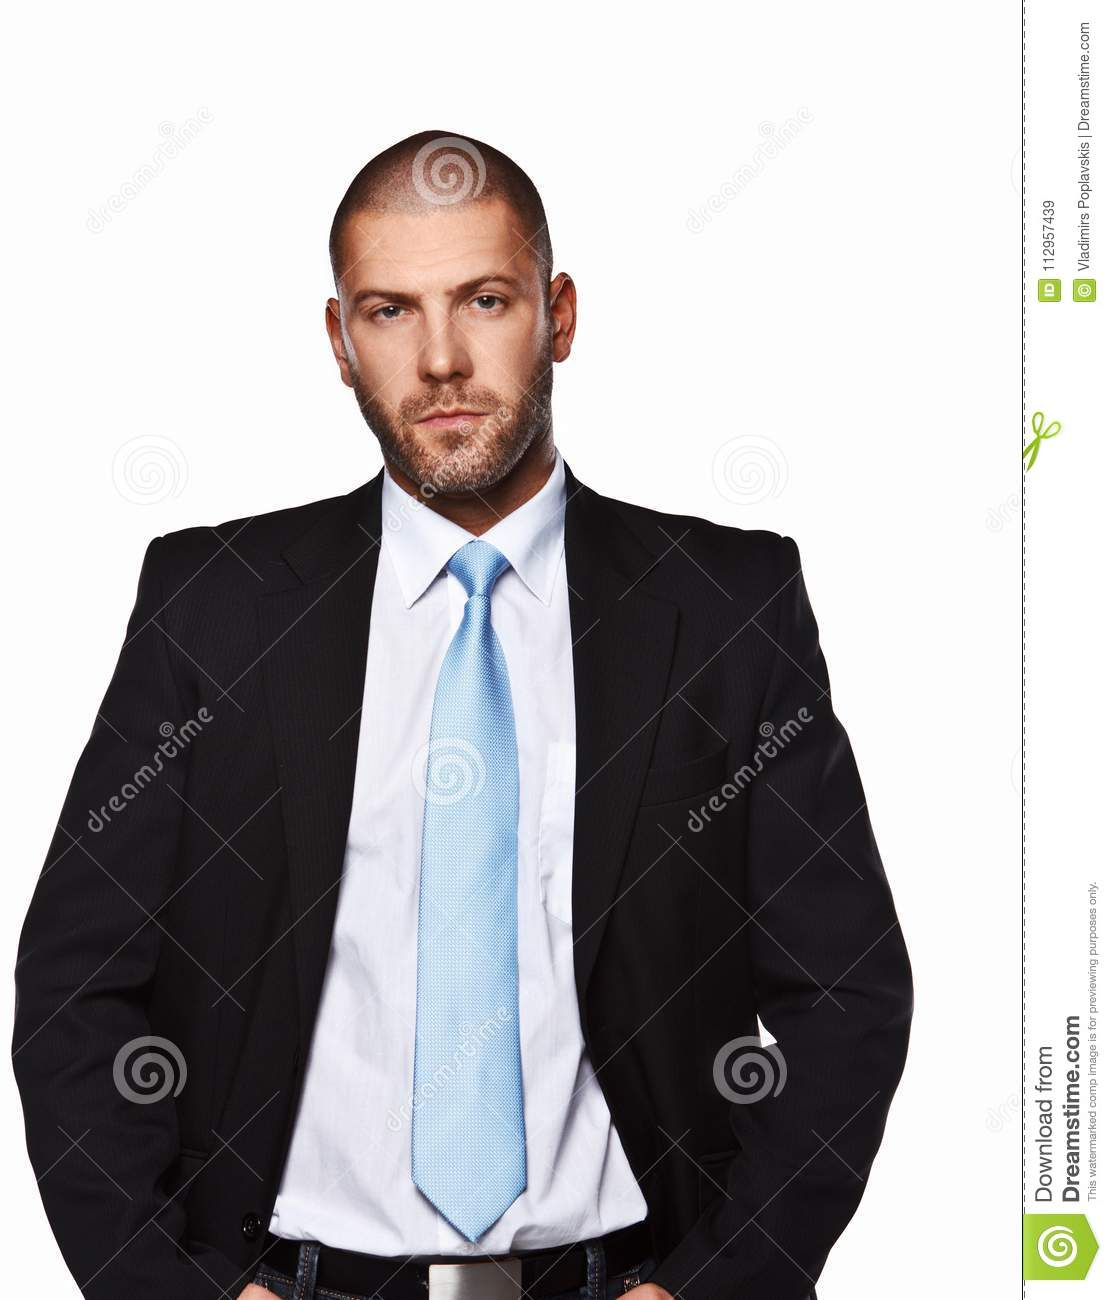 Business man in a suit.